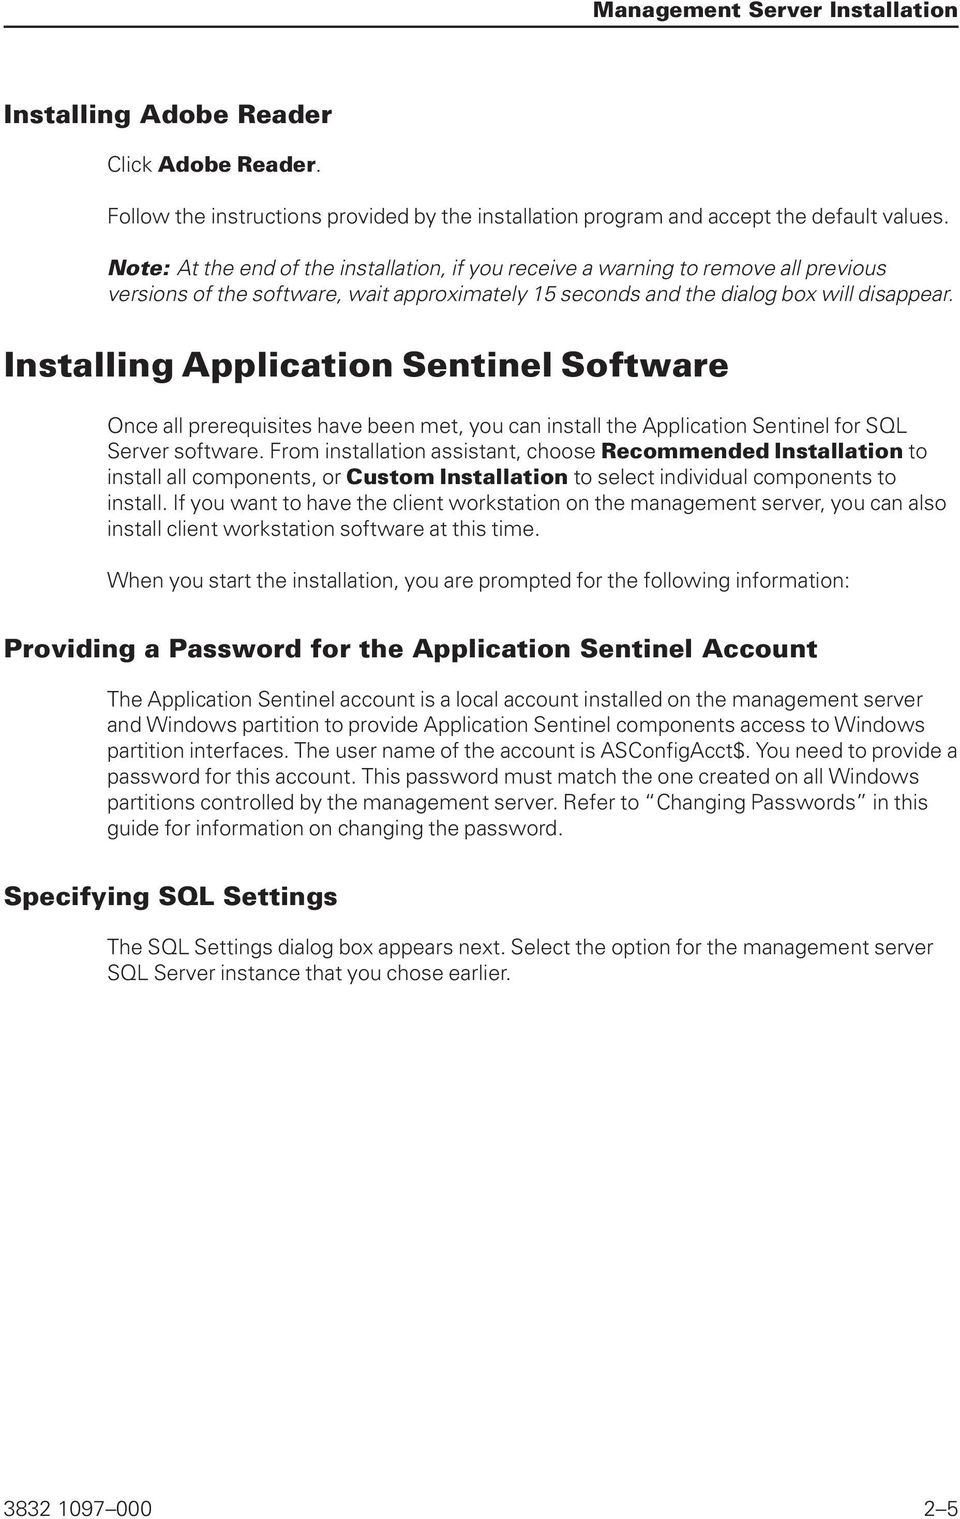 Installing Application Sentinel Software Once all prerequisites have been met, you can install the Application Sentinel for SQL Server software.